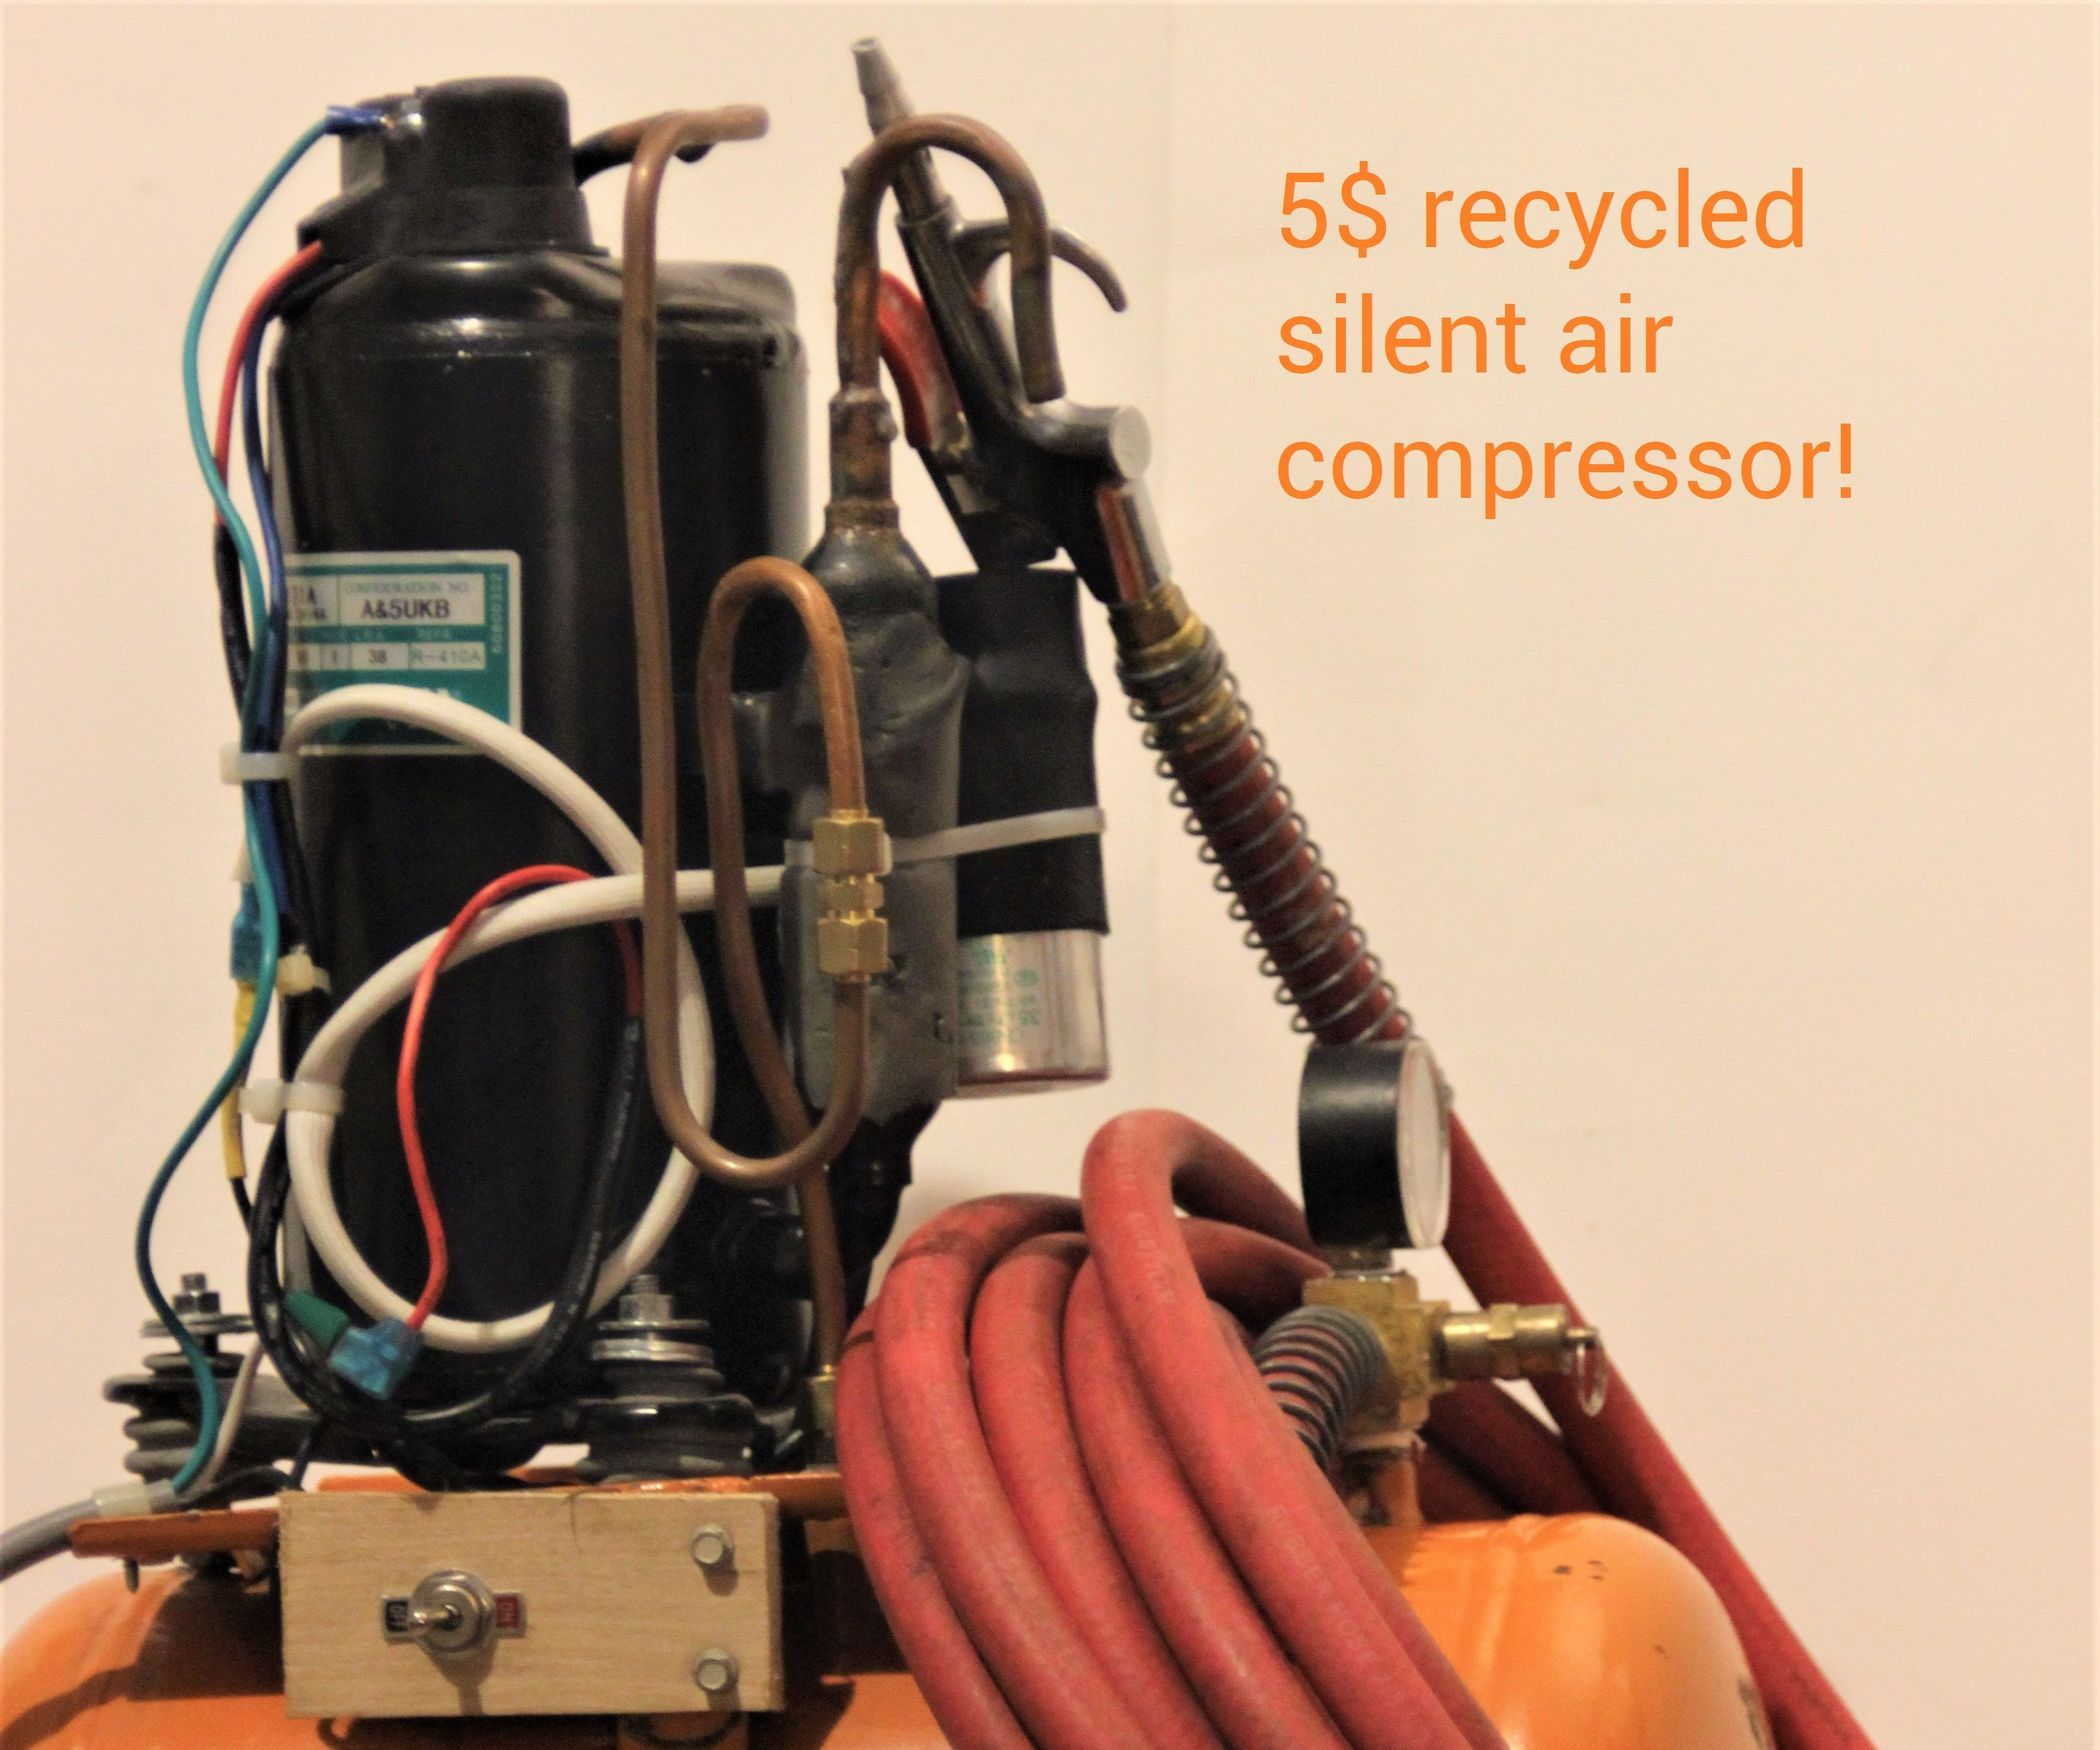 Silent Air Compressor Made of Recycled Rubbish! Air